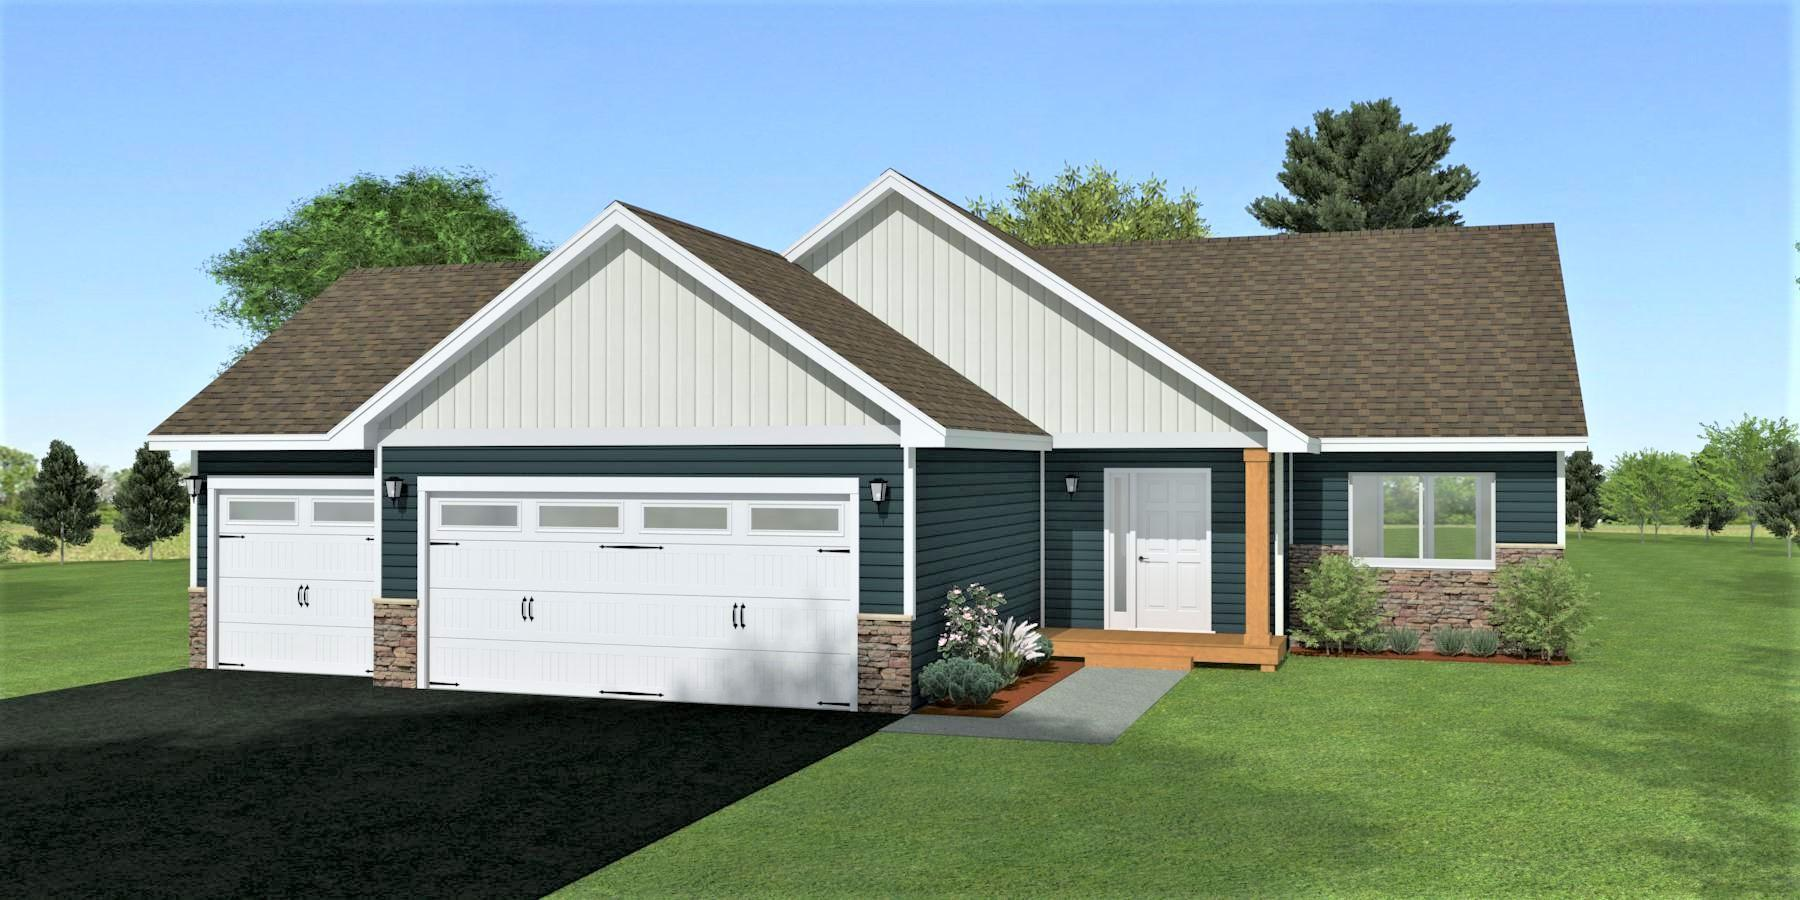 824 Hickory Curve Property Photo - Watertown, MN real estate listing